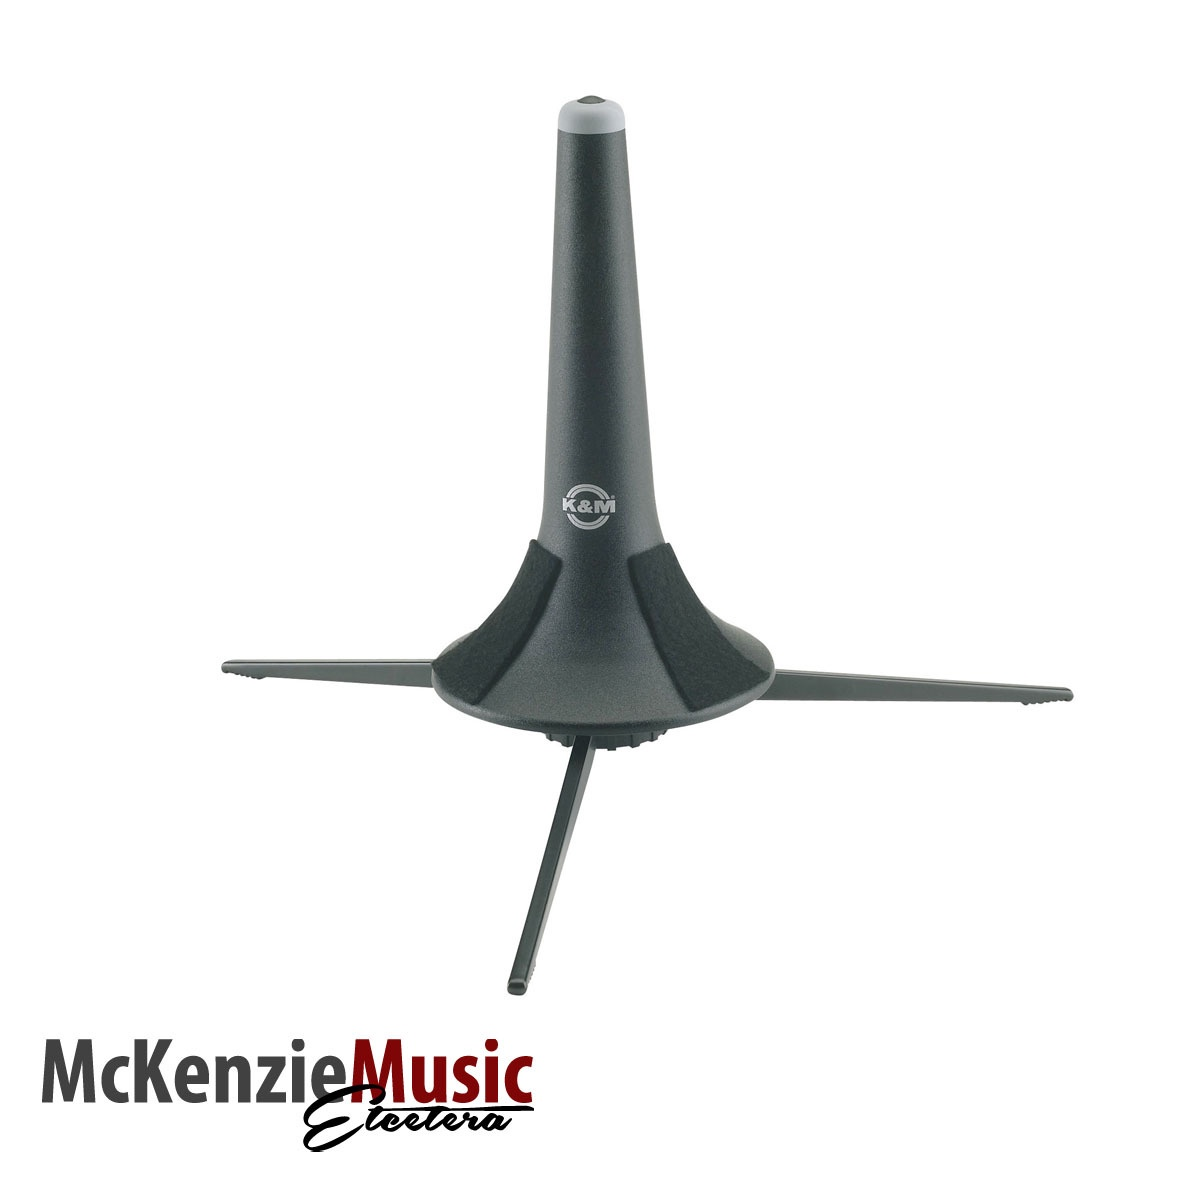 K & M Trumpet or Cornet Stand 15213 Bell Store